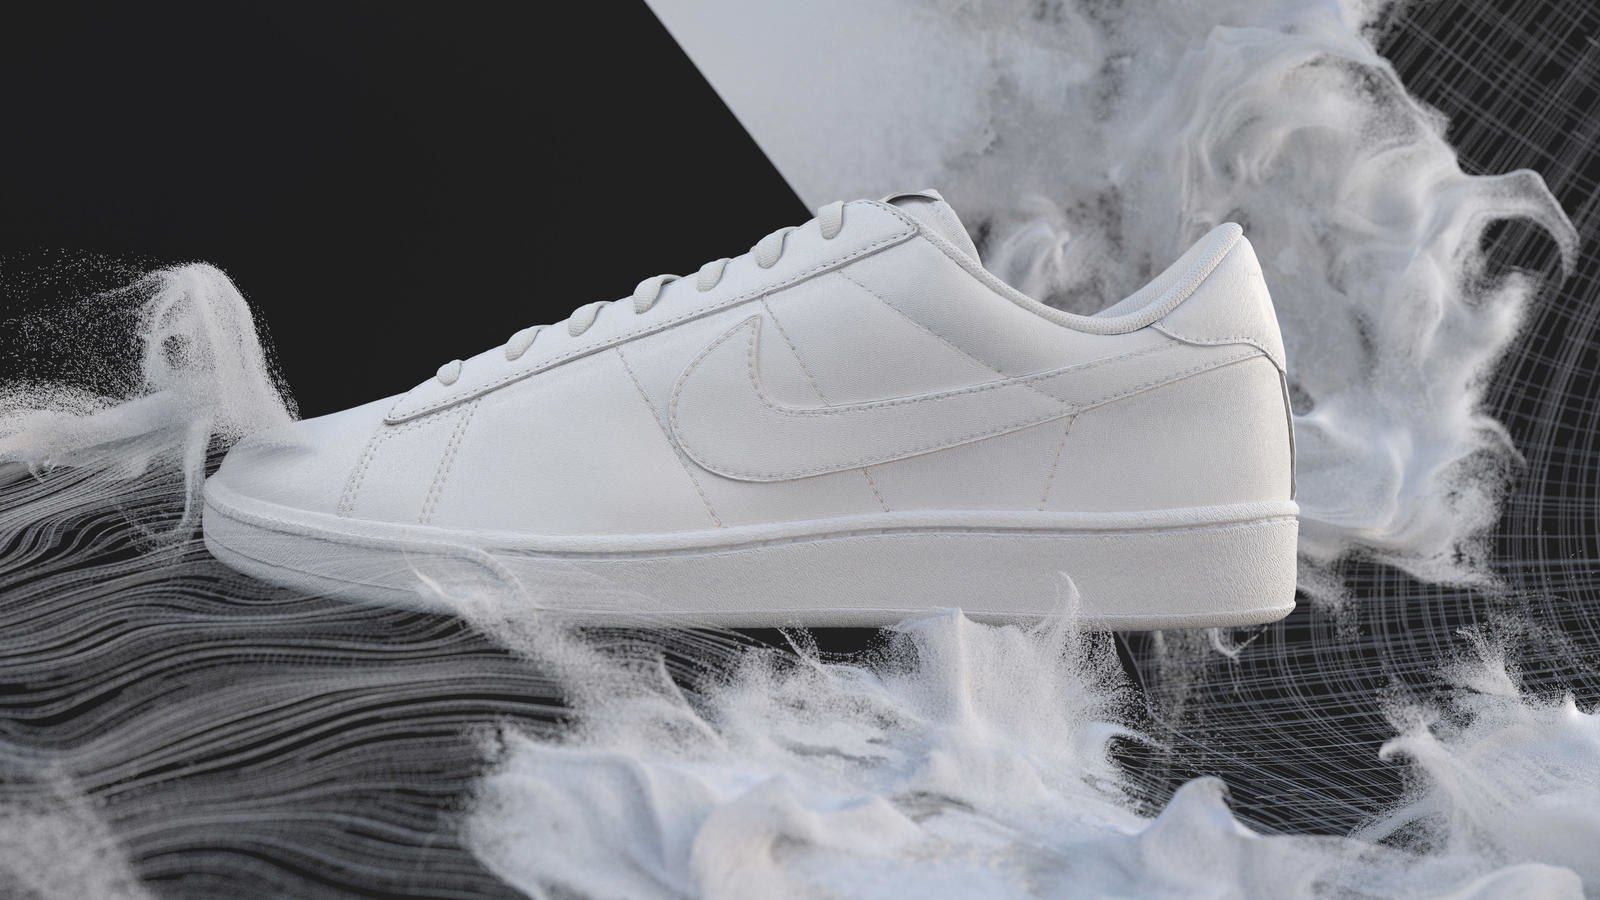 Nike Flyleather Is Here to Change How Leather Sneakers Are Made - Introducing Flyleather—Nike's latest game-changing fabric that makes its sneakers 50% more sustainable.